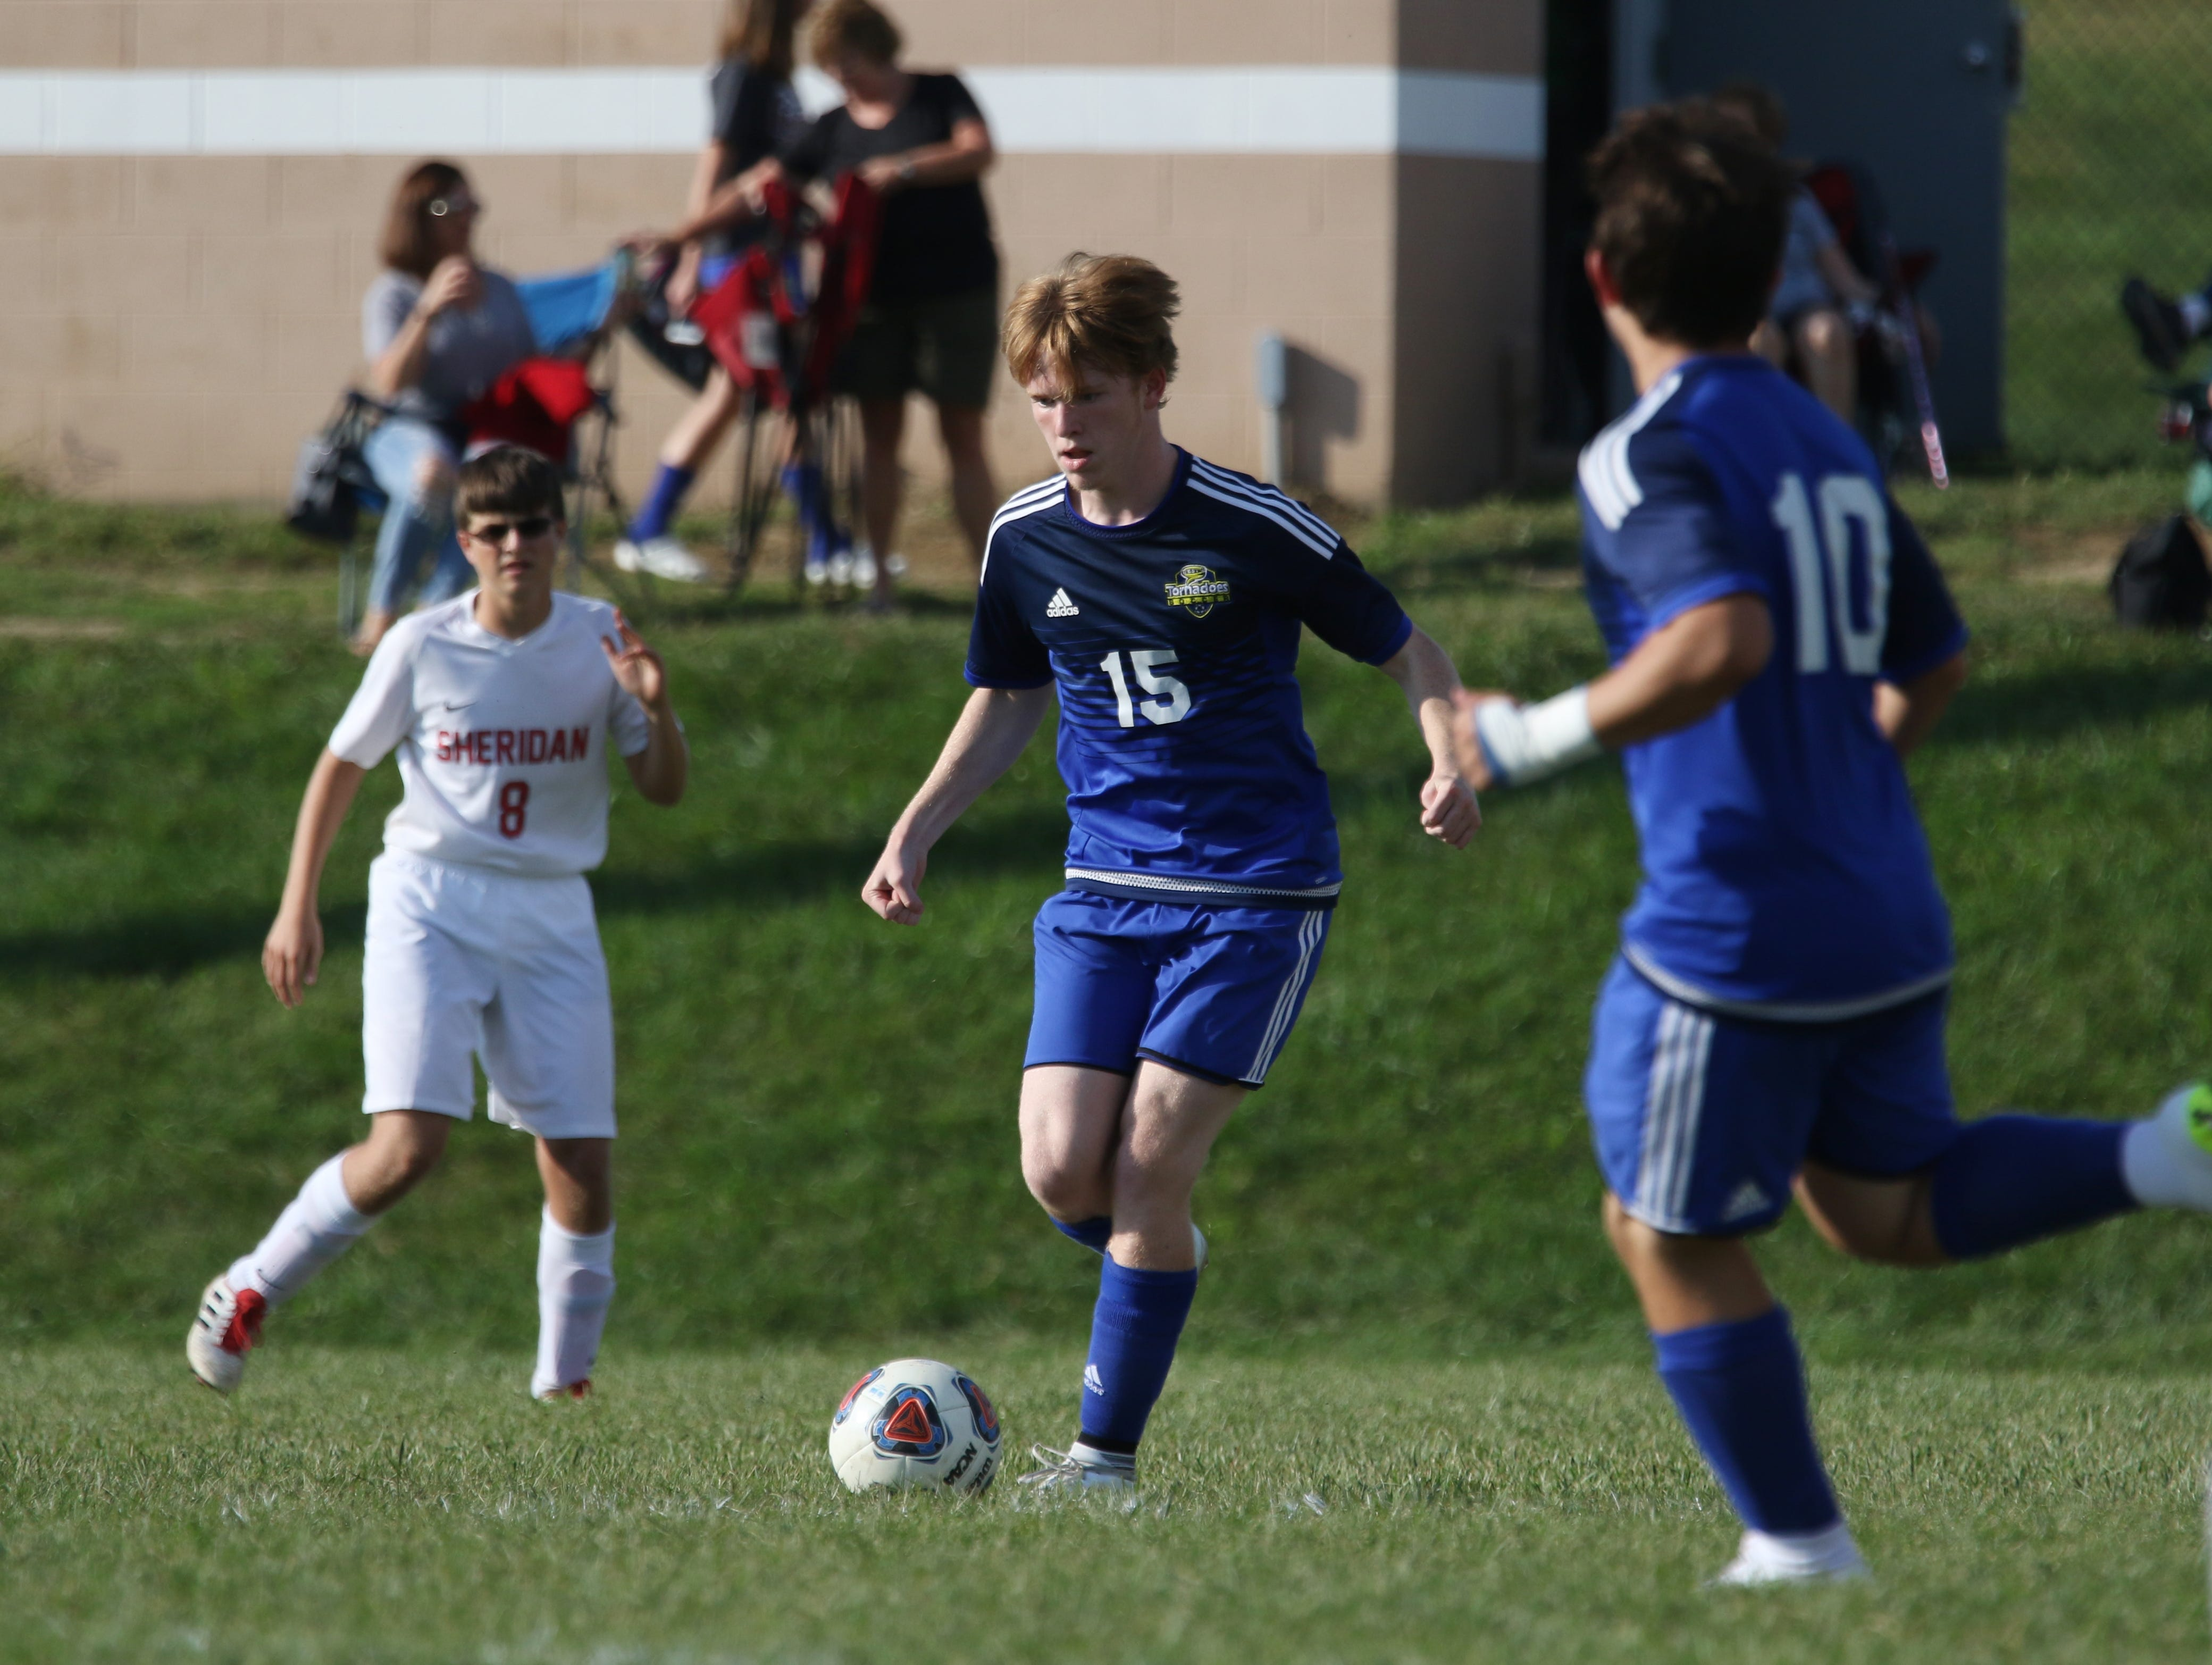 West Muskingum's Jonathan Petty moves with the ball against Sheridan.